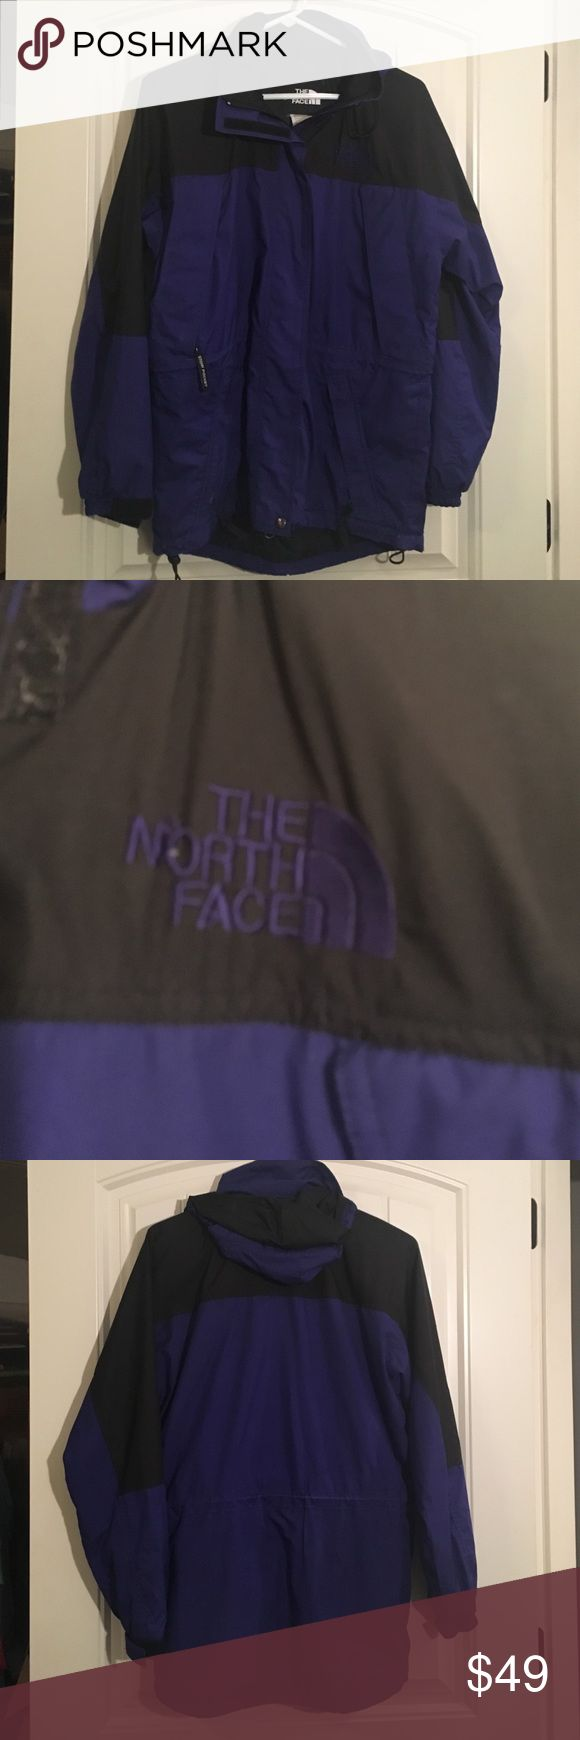 The North Face rain jacket OBO Good condition. Just sitting in the closet not being used. Great color. Dark purple. Tag is frayed from washing. The North Face Jackets & Coats